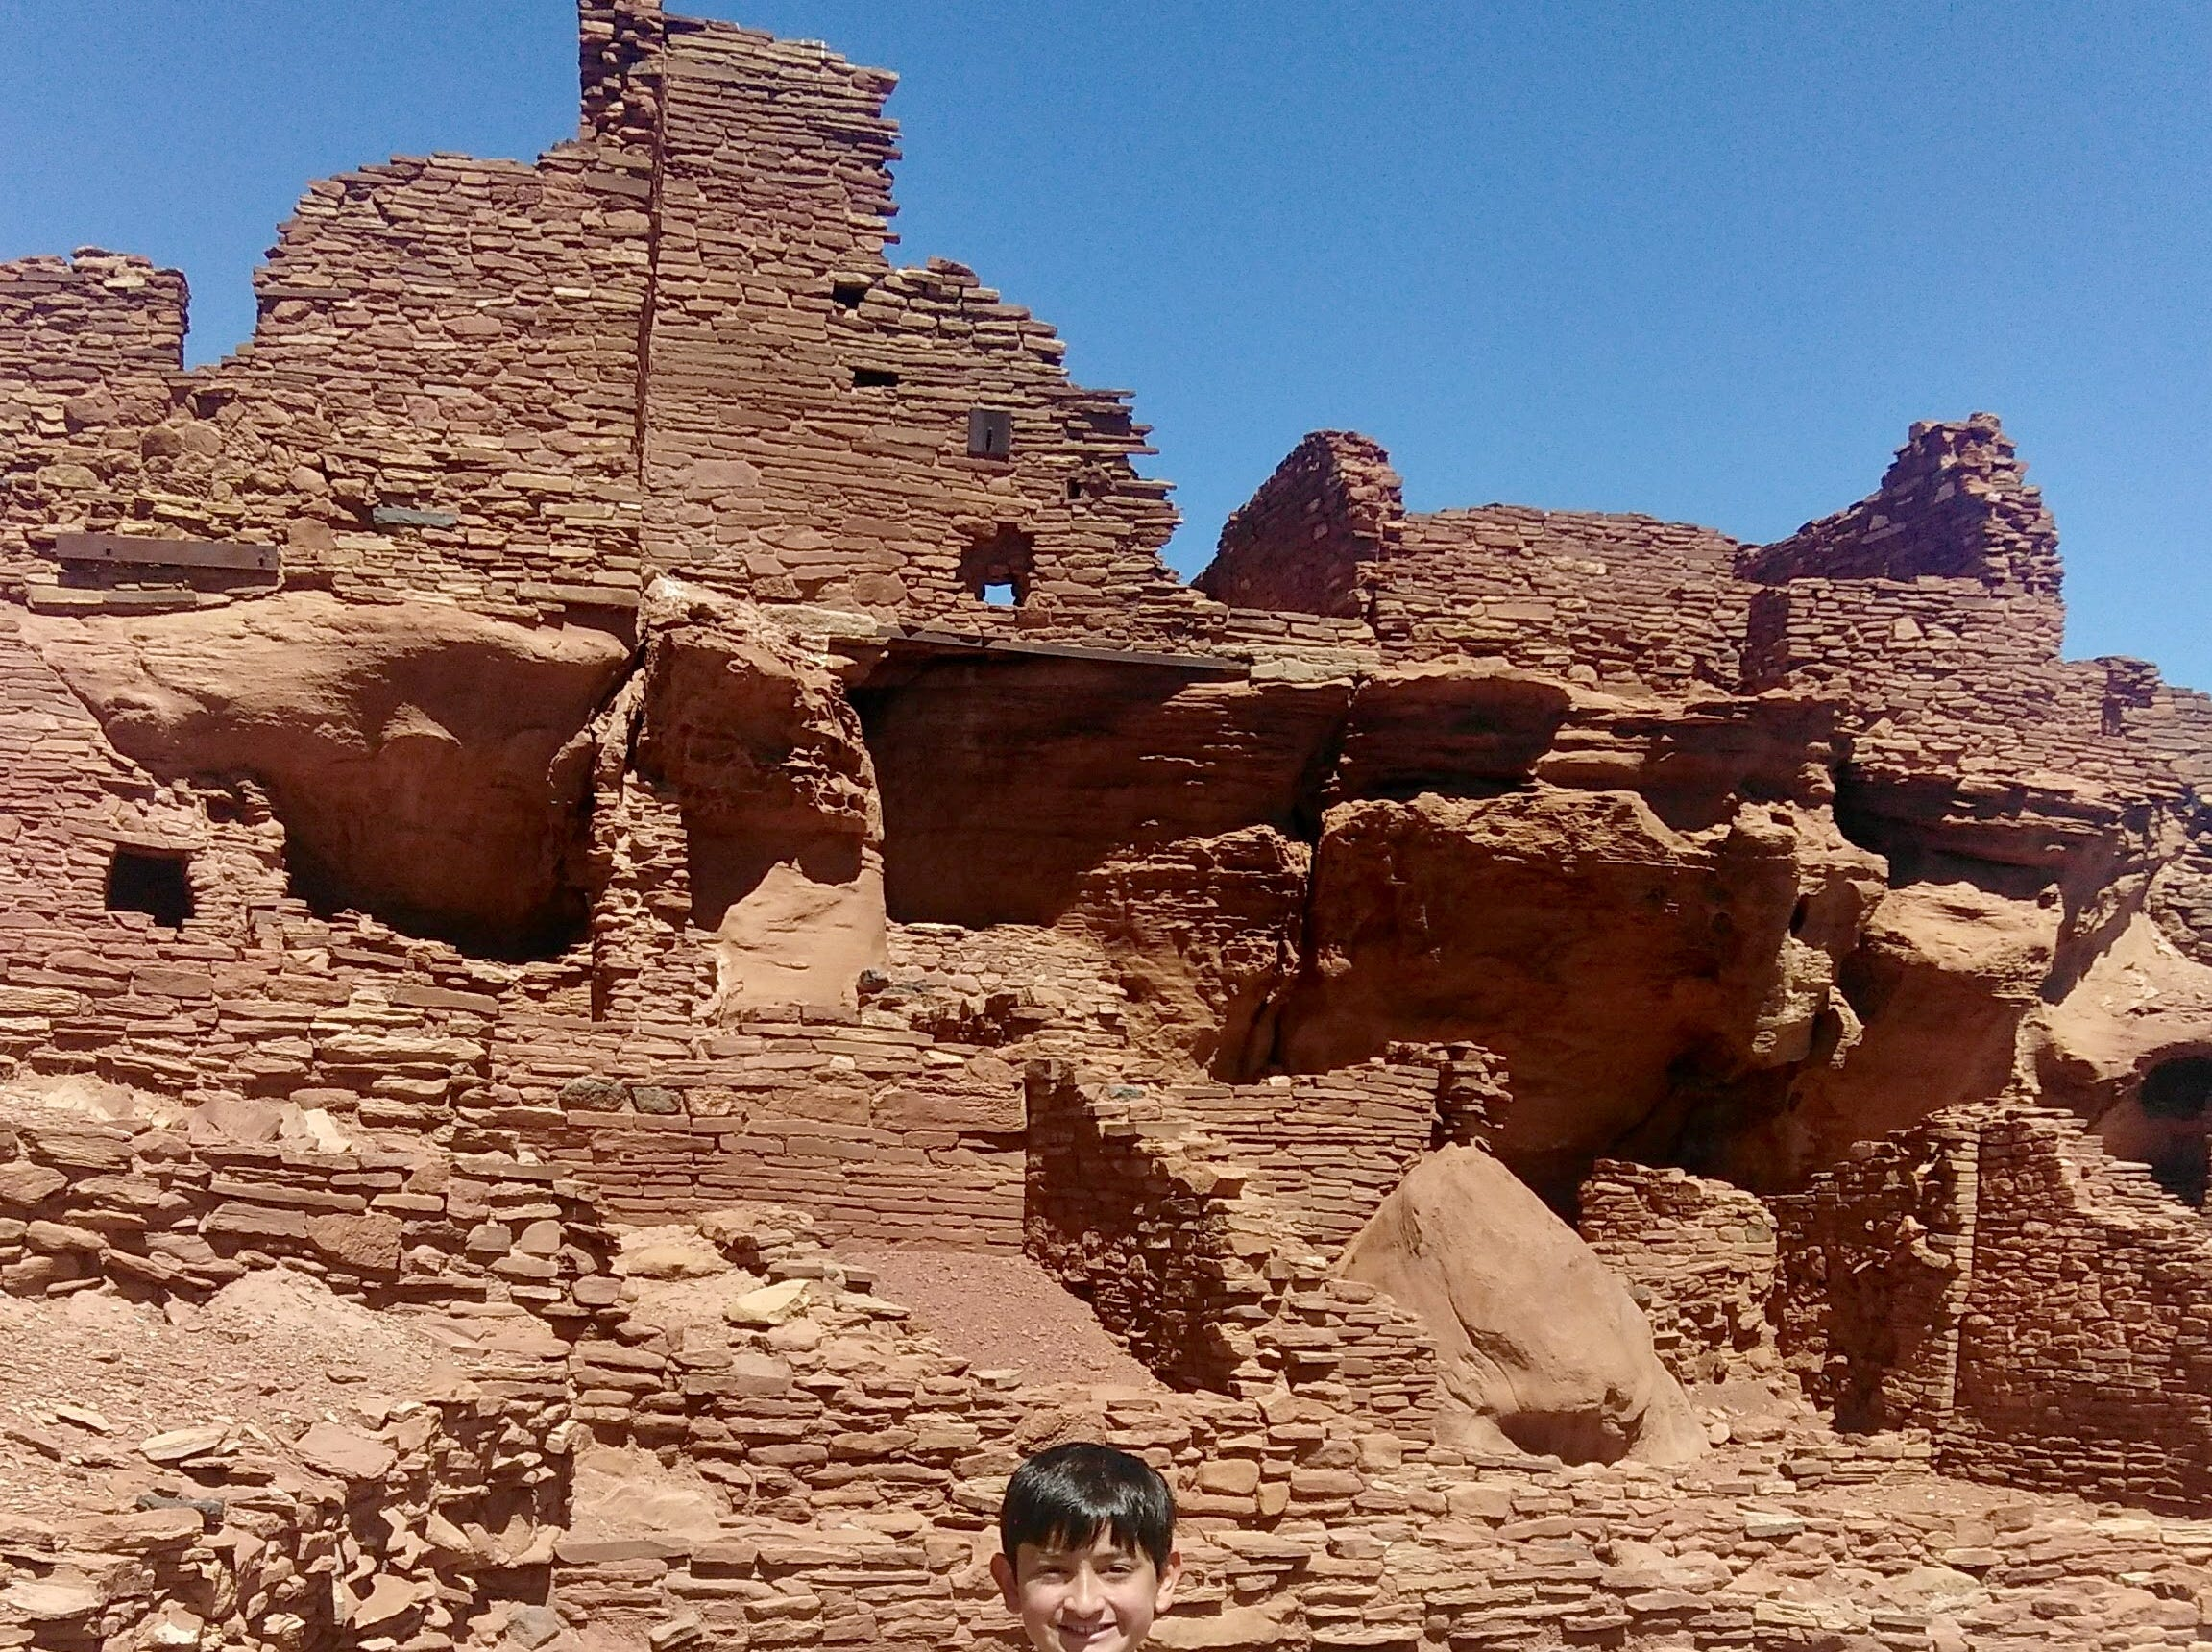 Bryan Wilson, 12, at Wupatki National Monument wearing his vest covered with Junior Ranger badges. Kids can earn badges by completing educational activities at national parks and sites.